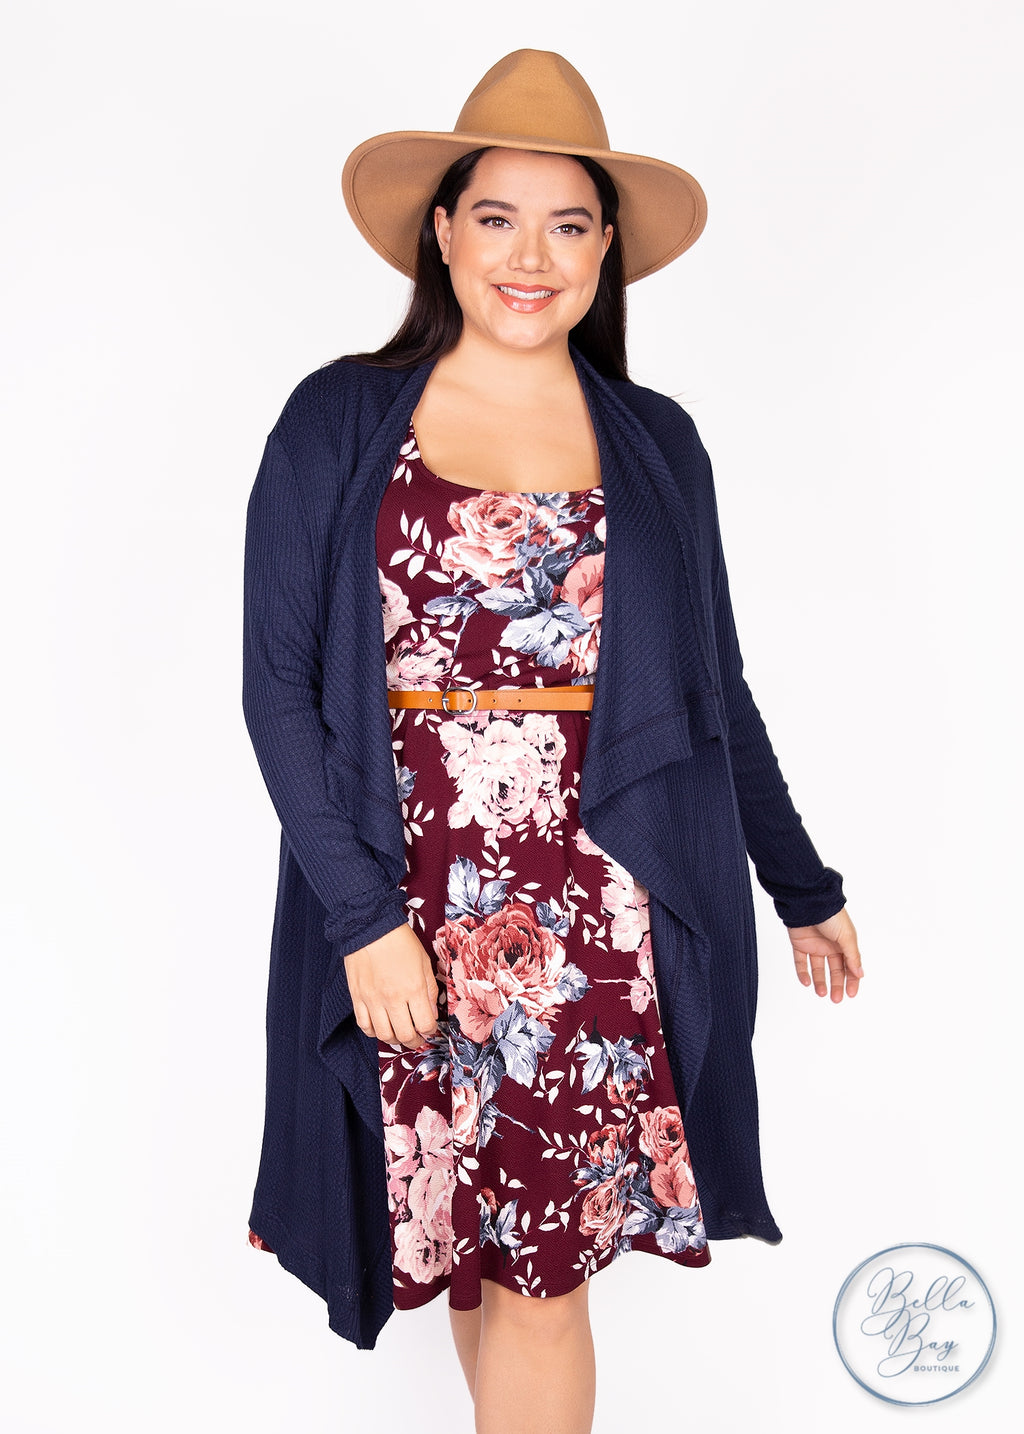 Paisley Raye Dusty Miller Cardigan- Navy Waffle Knit (XL) - Paisley Raye with Bella Bay Boutique, shop now at  https://shopbellabay.com/ or locally in Newport Oregon